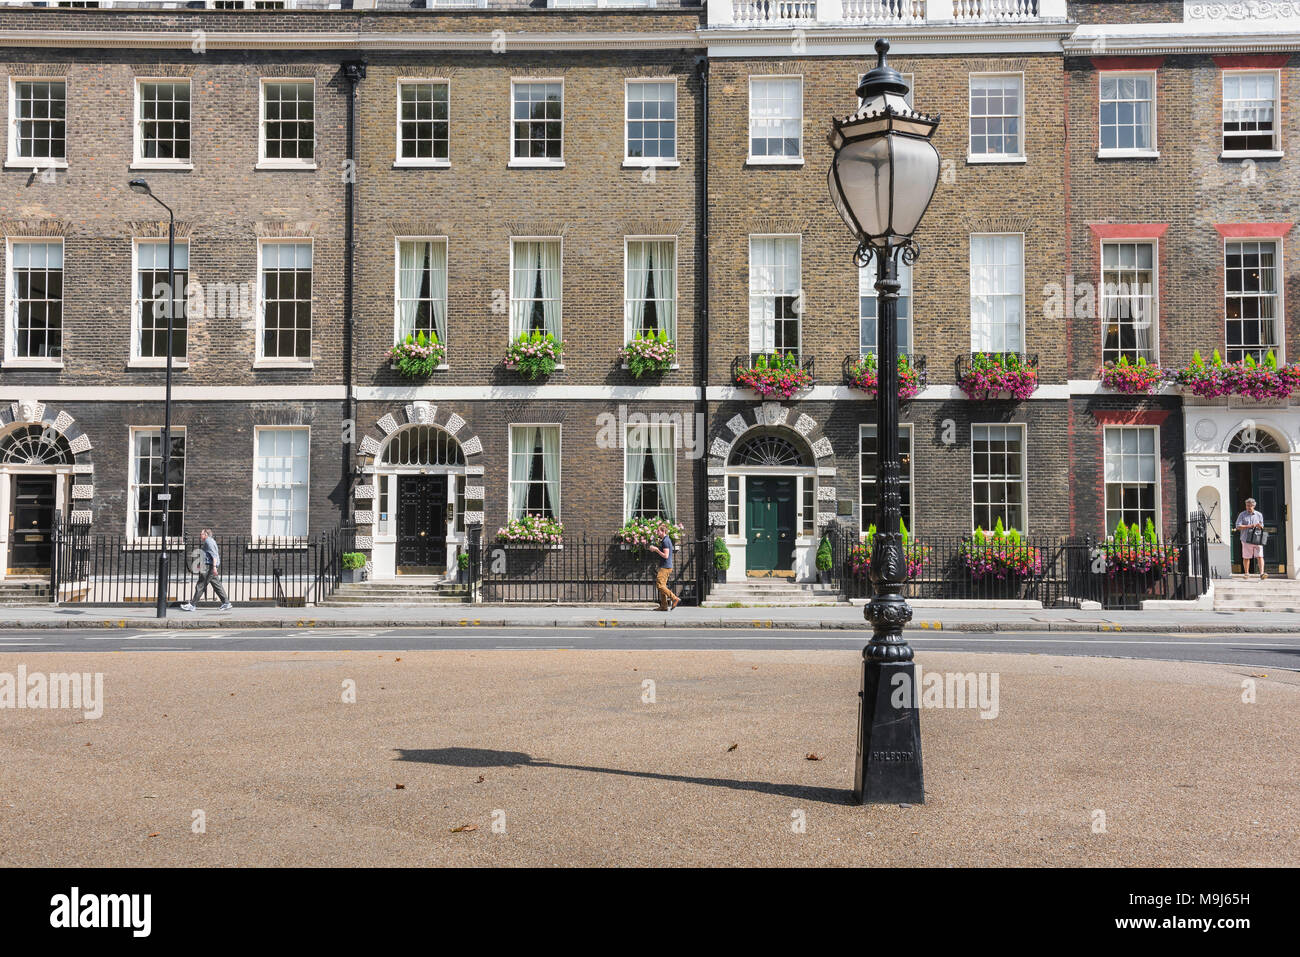 Bedford Square London, a row of Georgian terraced houses in Bedford Square in the Bloomsbury area of London, UK. - Stock Image